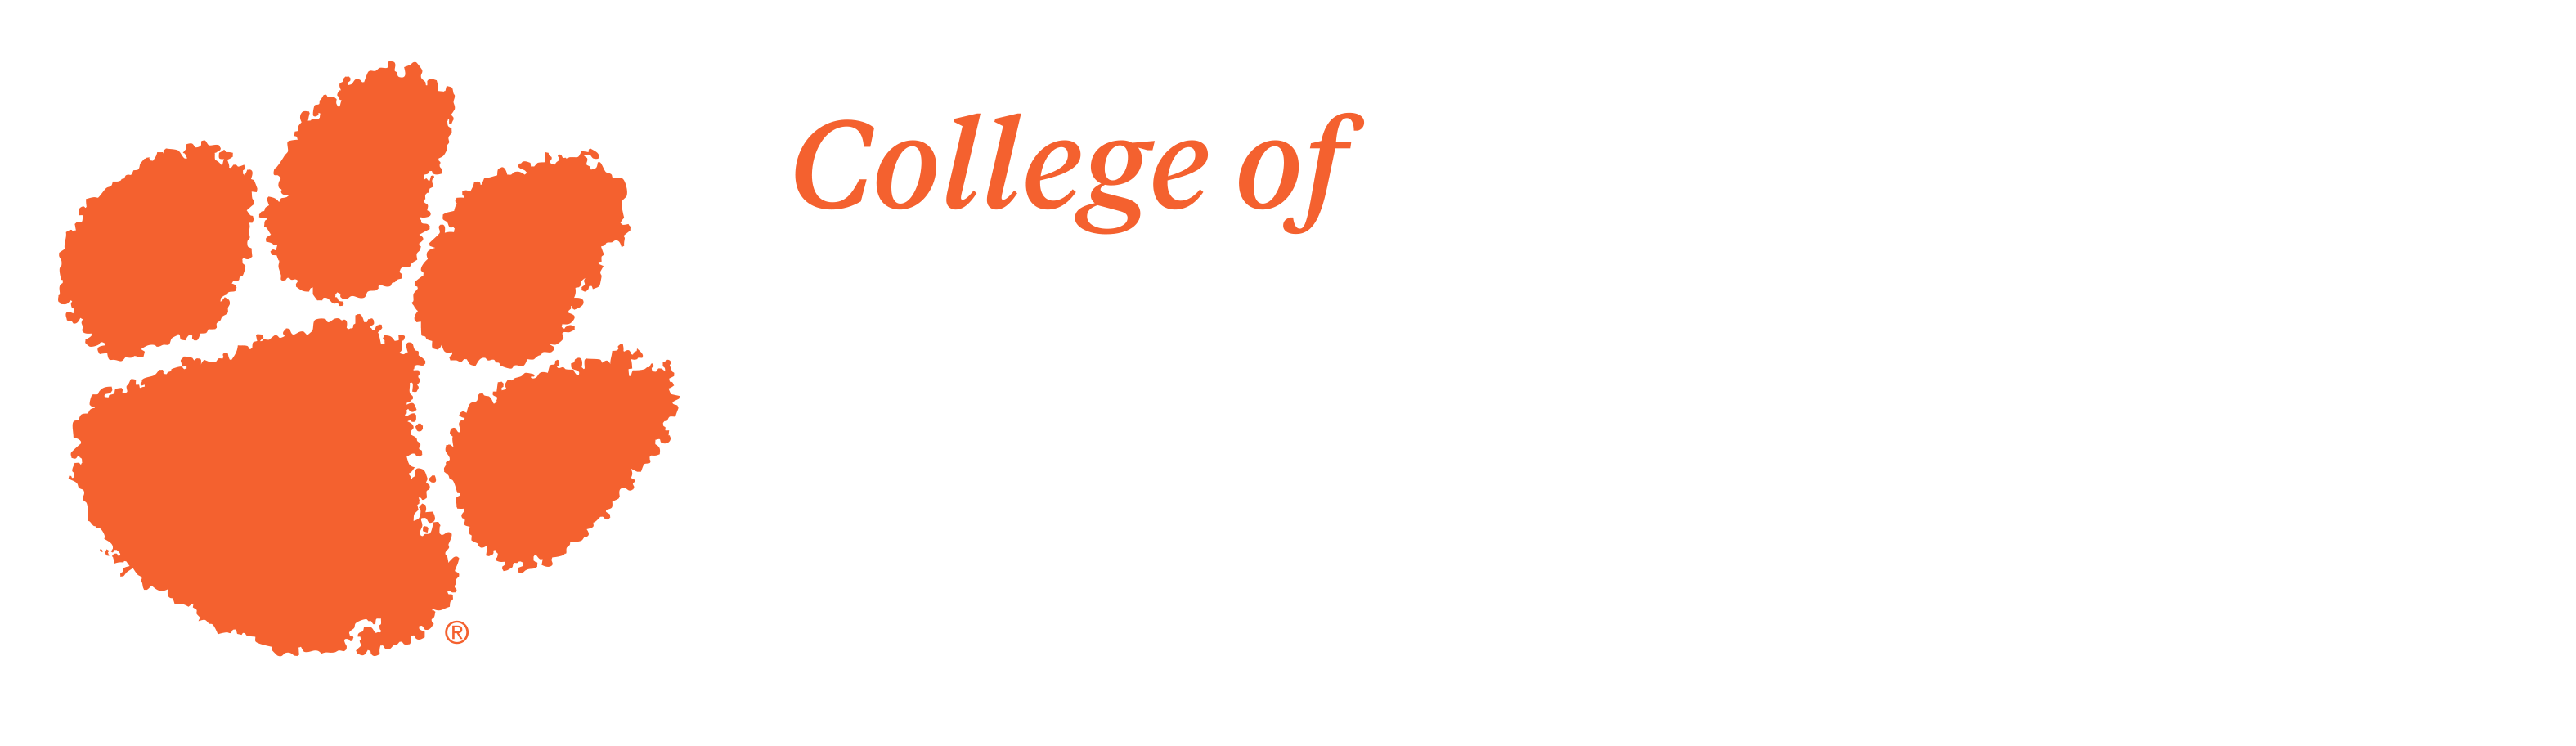 Clemson University College of Engineering and Science, South Carolina